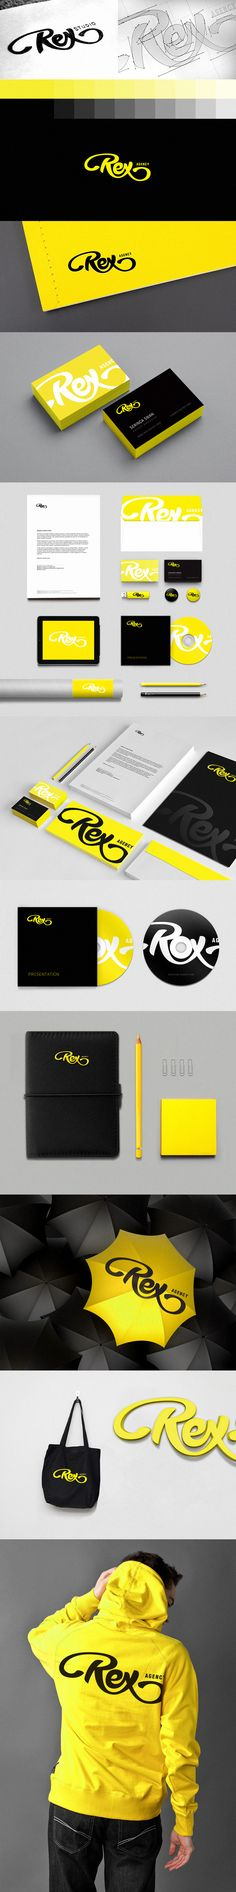 Black and yellow/gold always look great together. The handwritten—rex—nice logo. Using that over and over again highlights the brand.